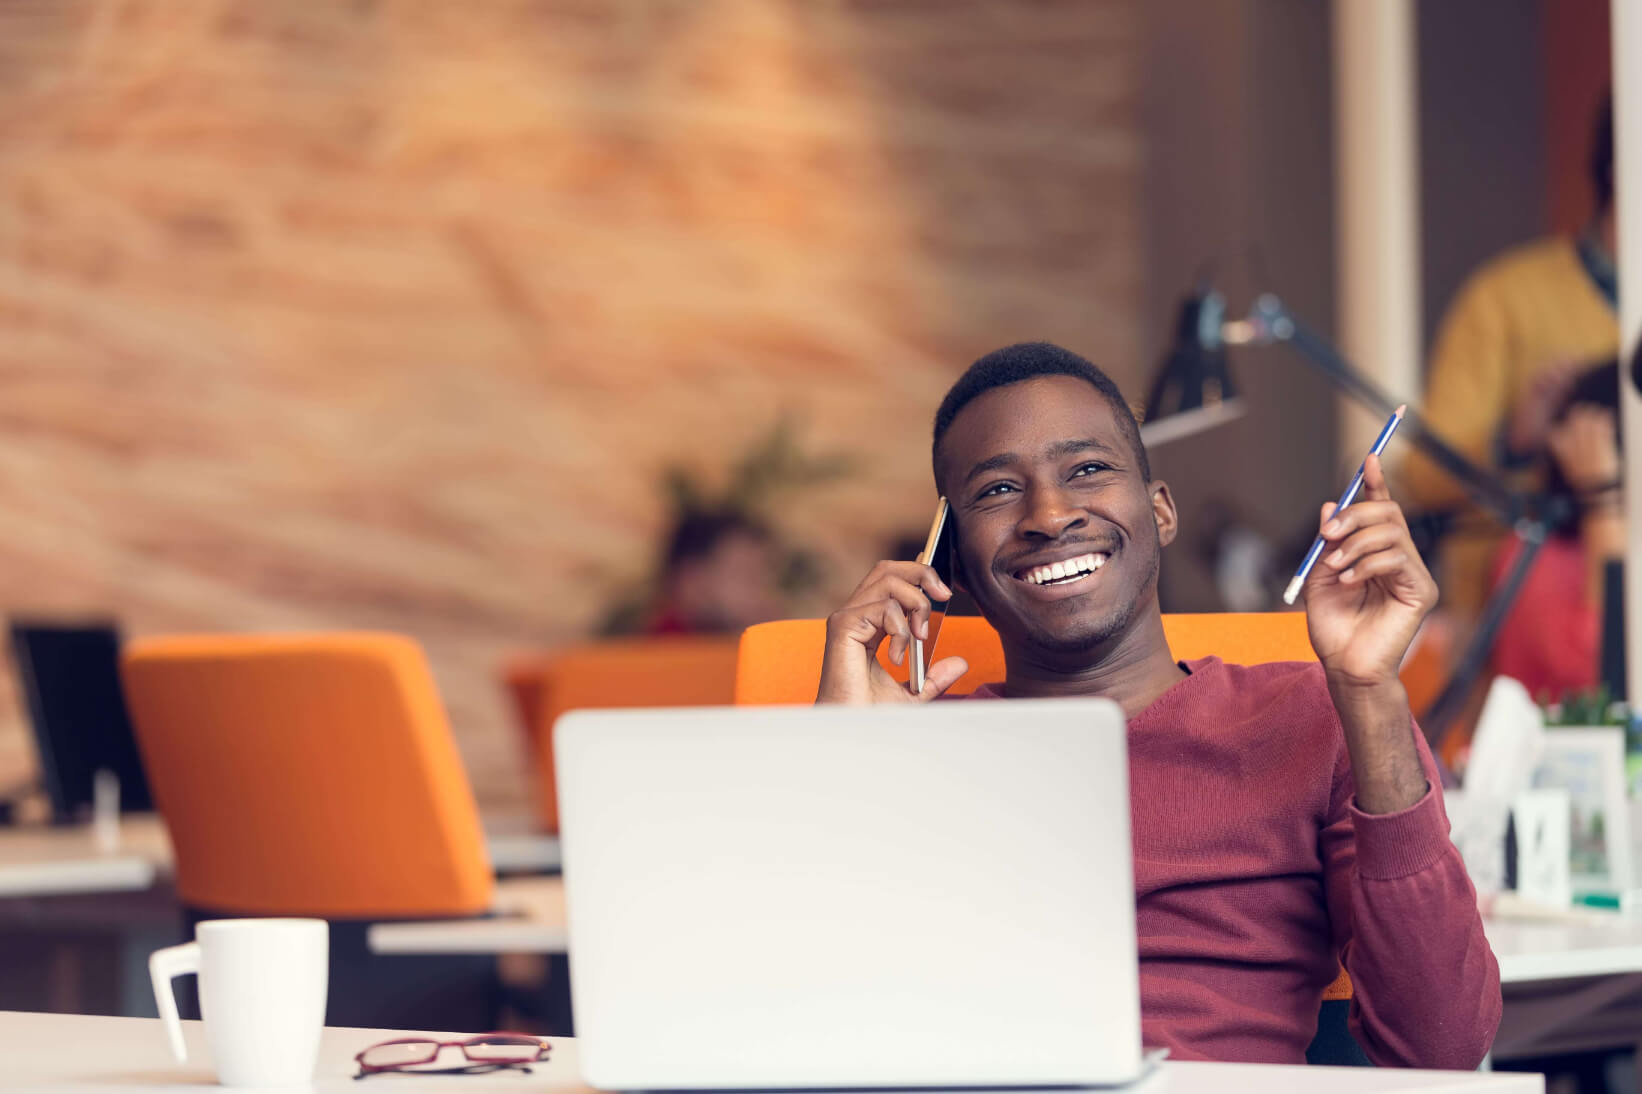 Person on phone at office